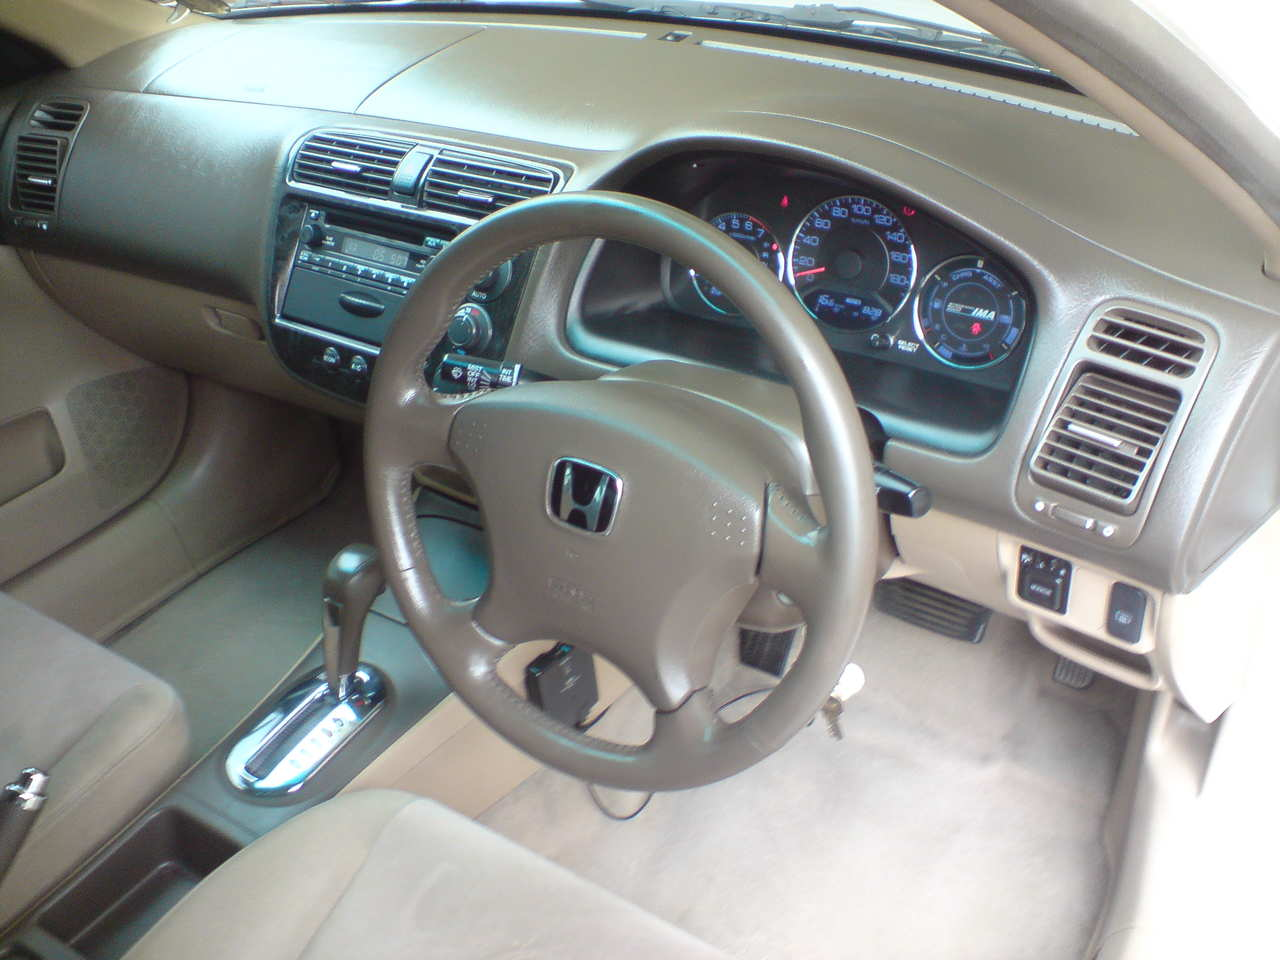 2003 Honda Civic Hybrid Photos 13 Ff Automatic For Sale Photo 3 Enlarge 1280x960